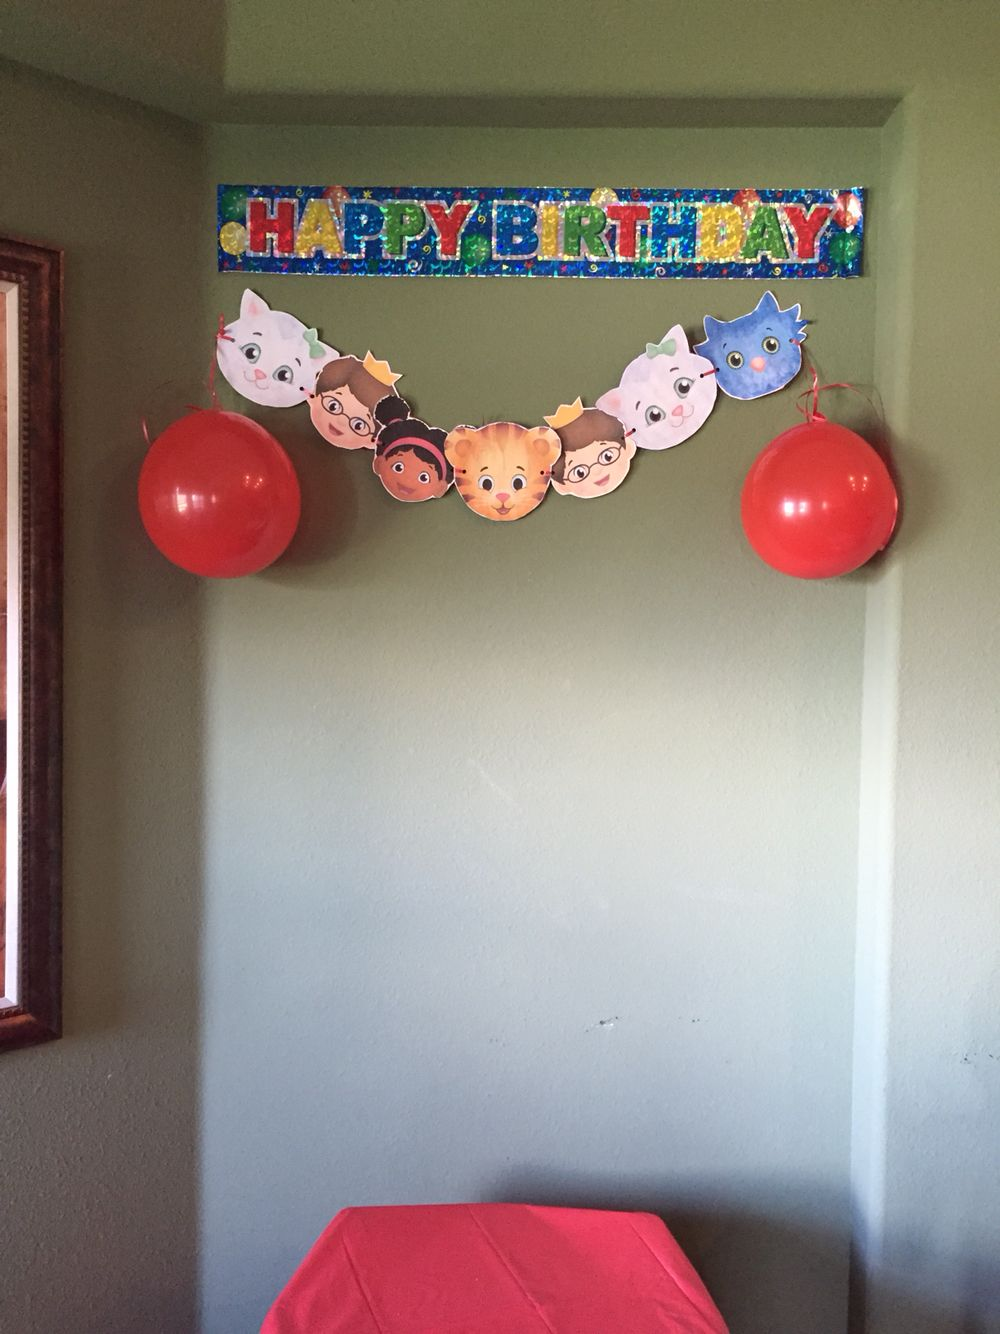 Happy Birthday Banner From Dollar Tree Balloons And Character Faces Printed